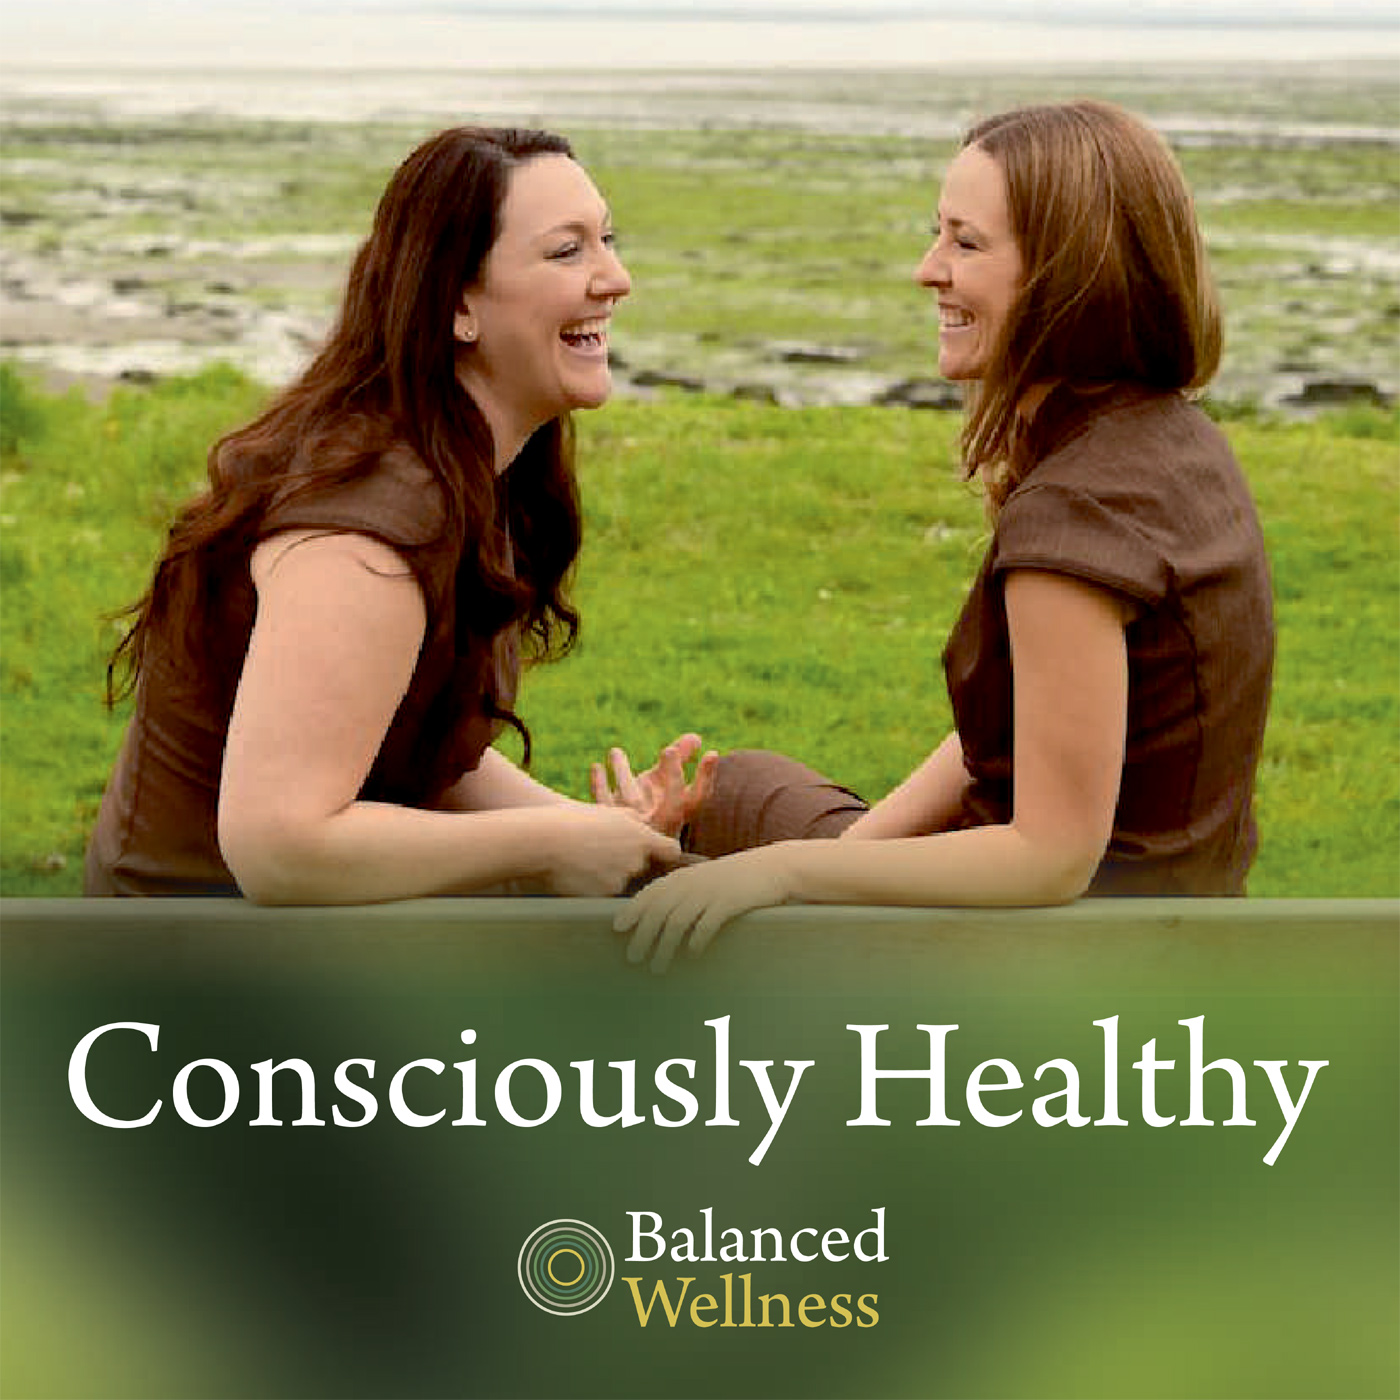 Consciously Healthy